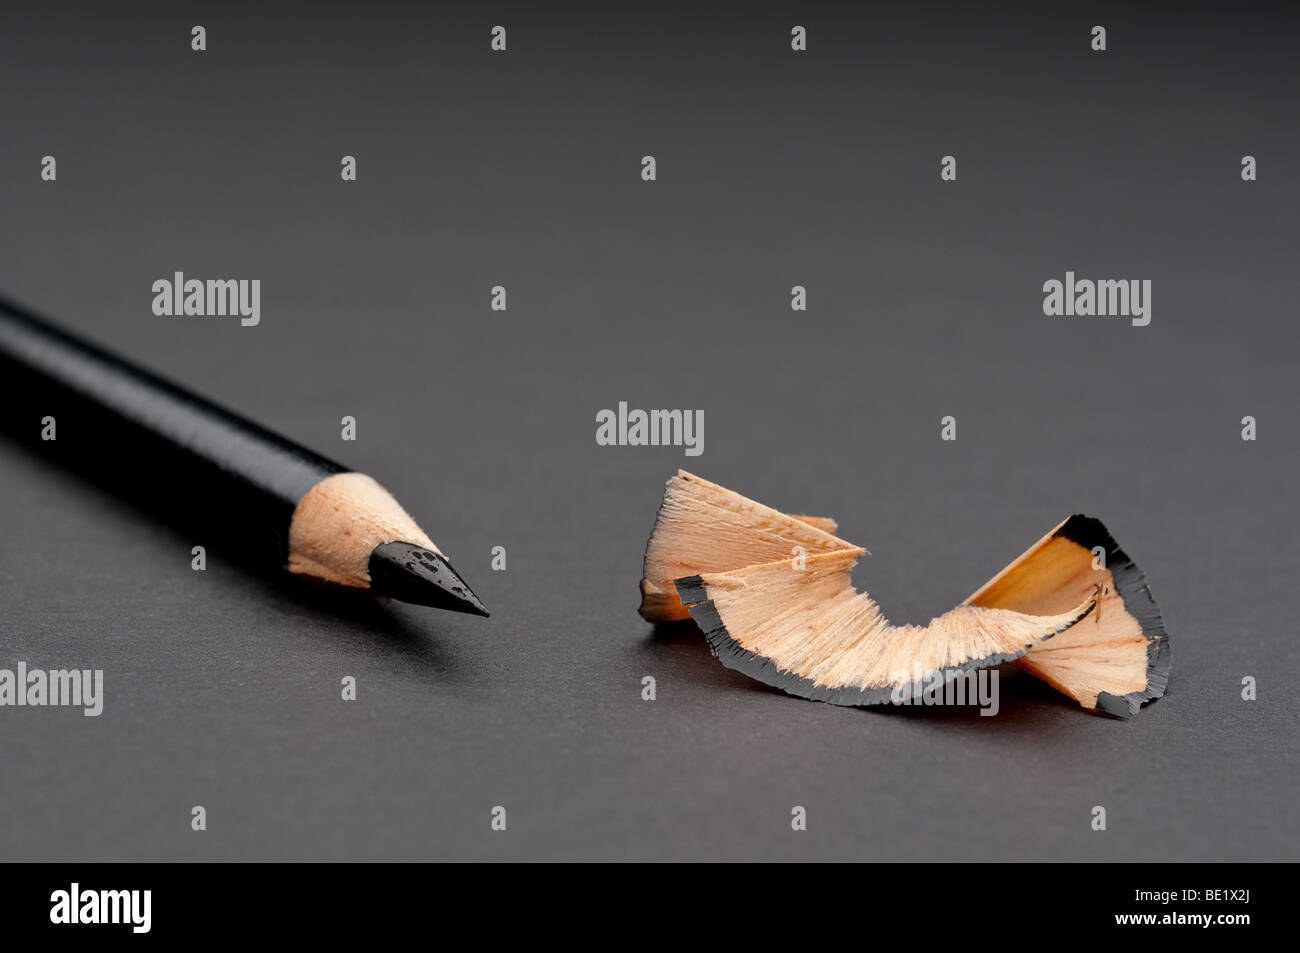 Horizontal close up of a sharpened black pencil with shavings - Stock Image